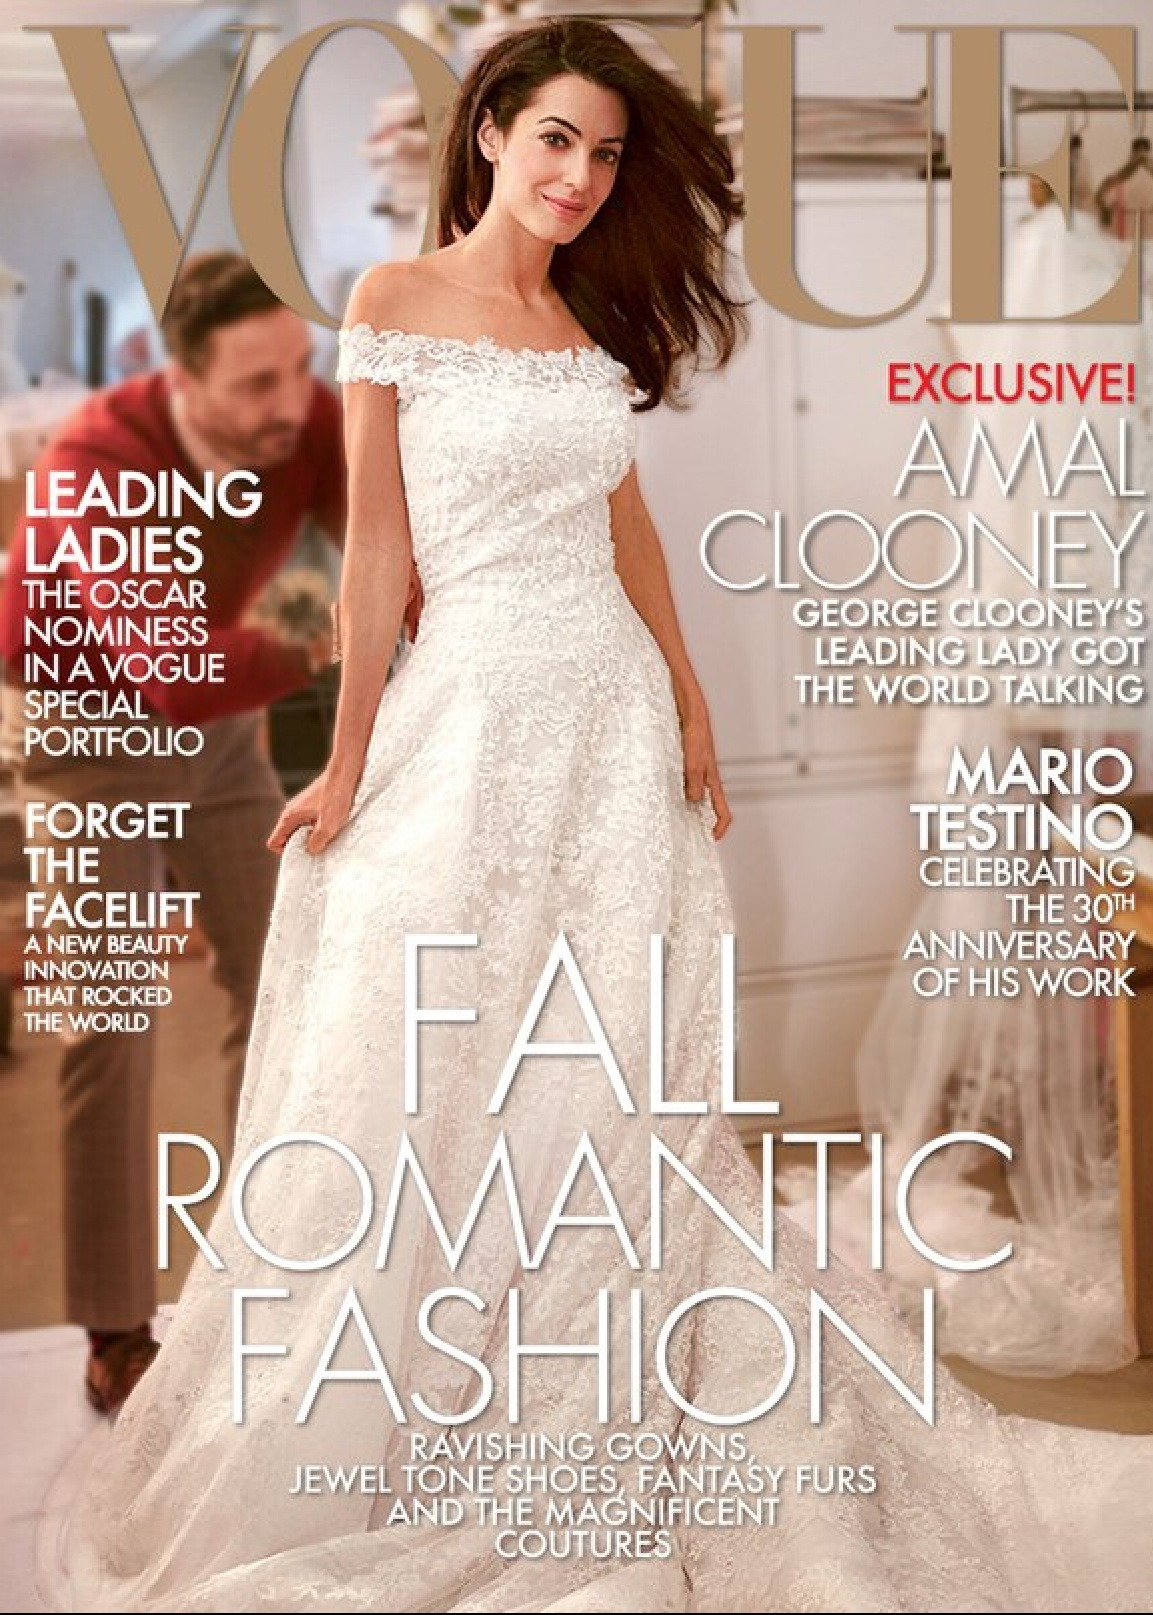 Is Amal Clooney the next VOGUE cover ? Here the cover